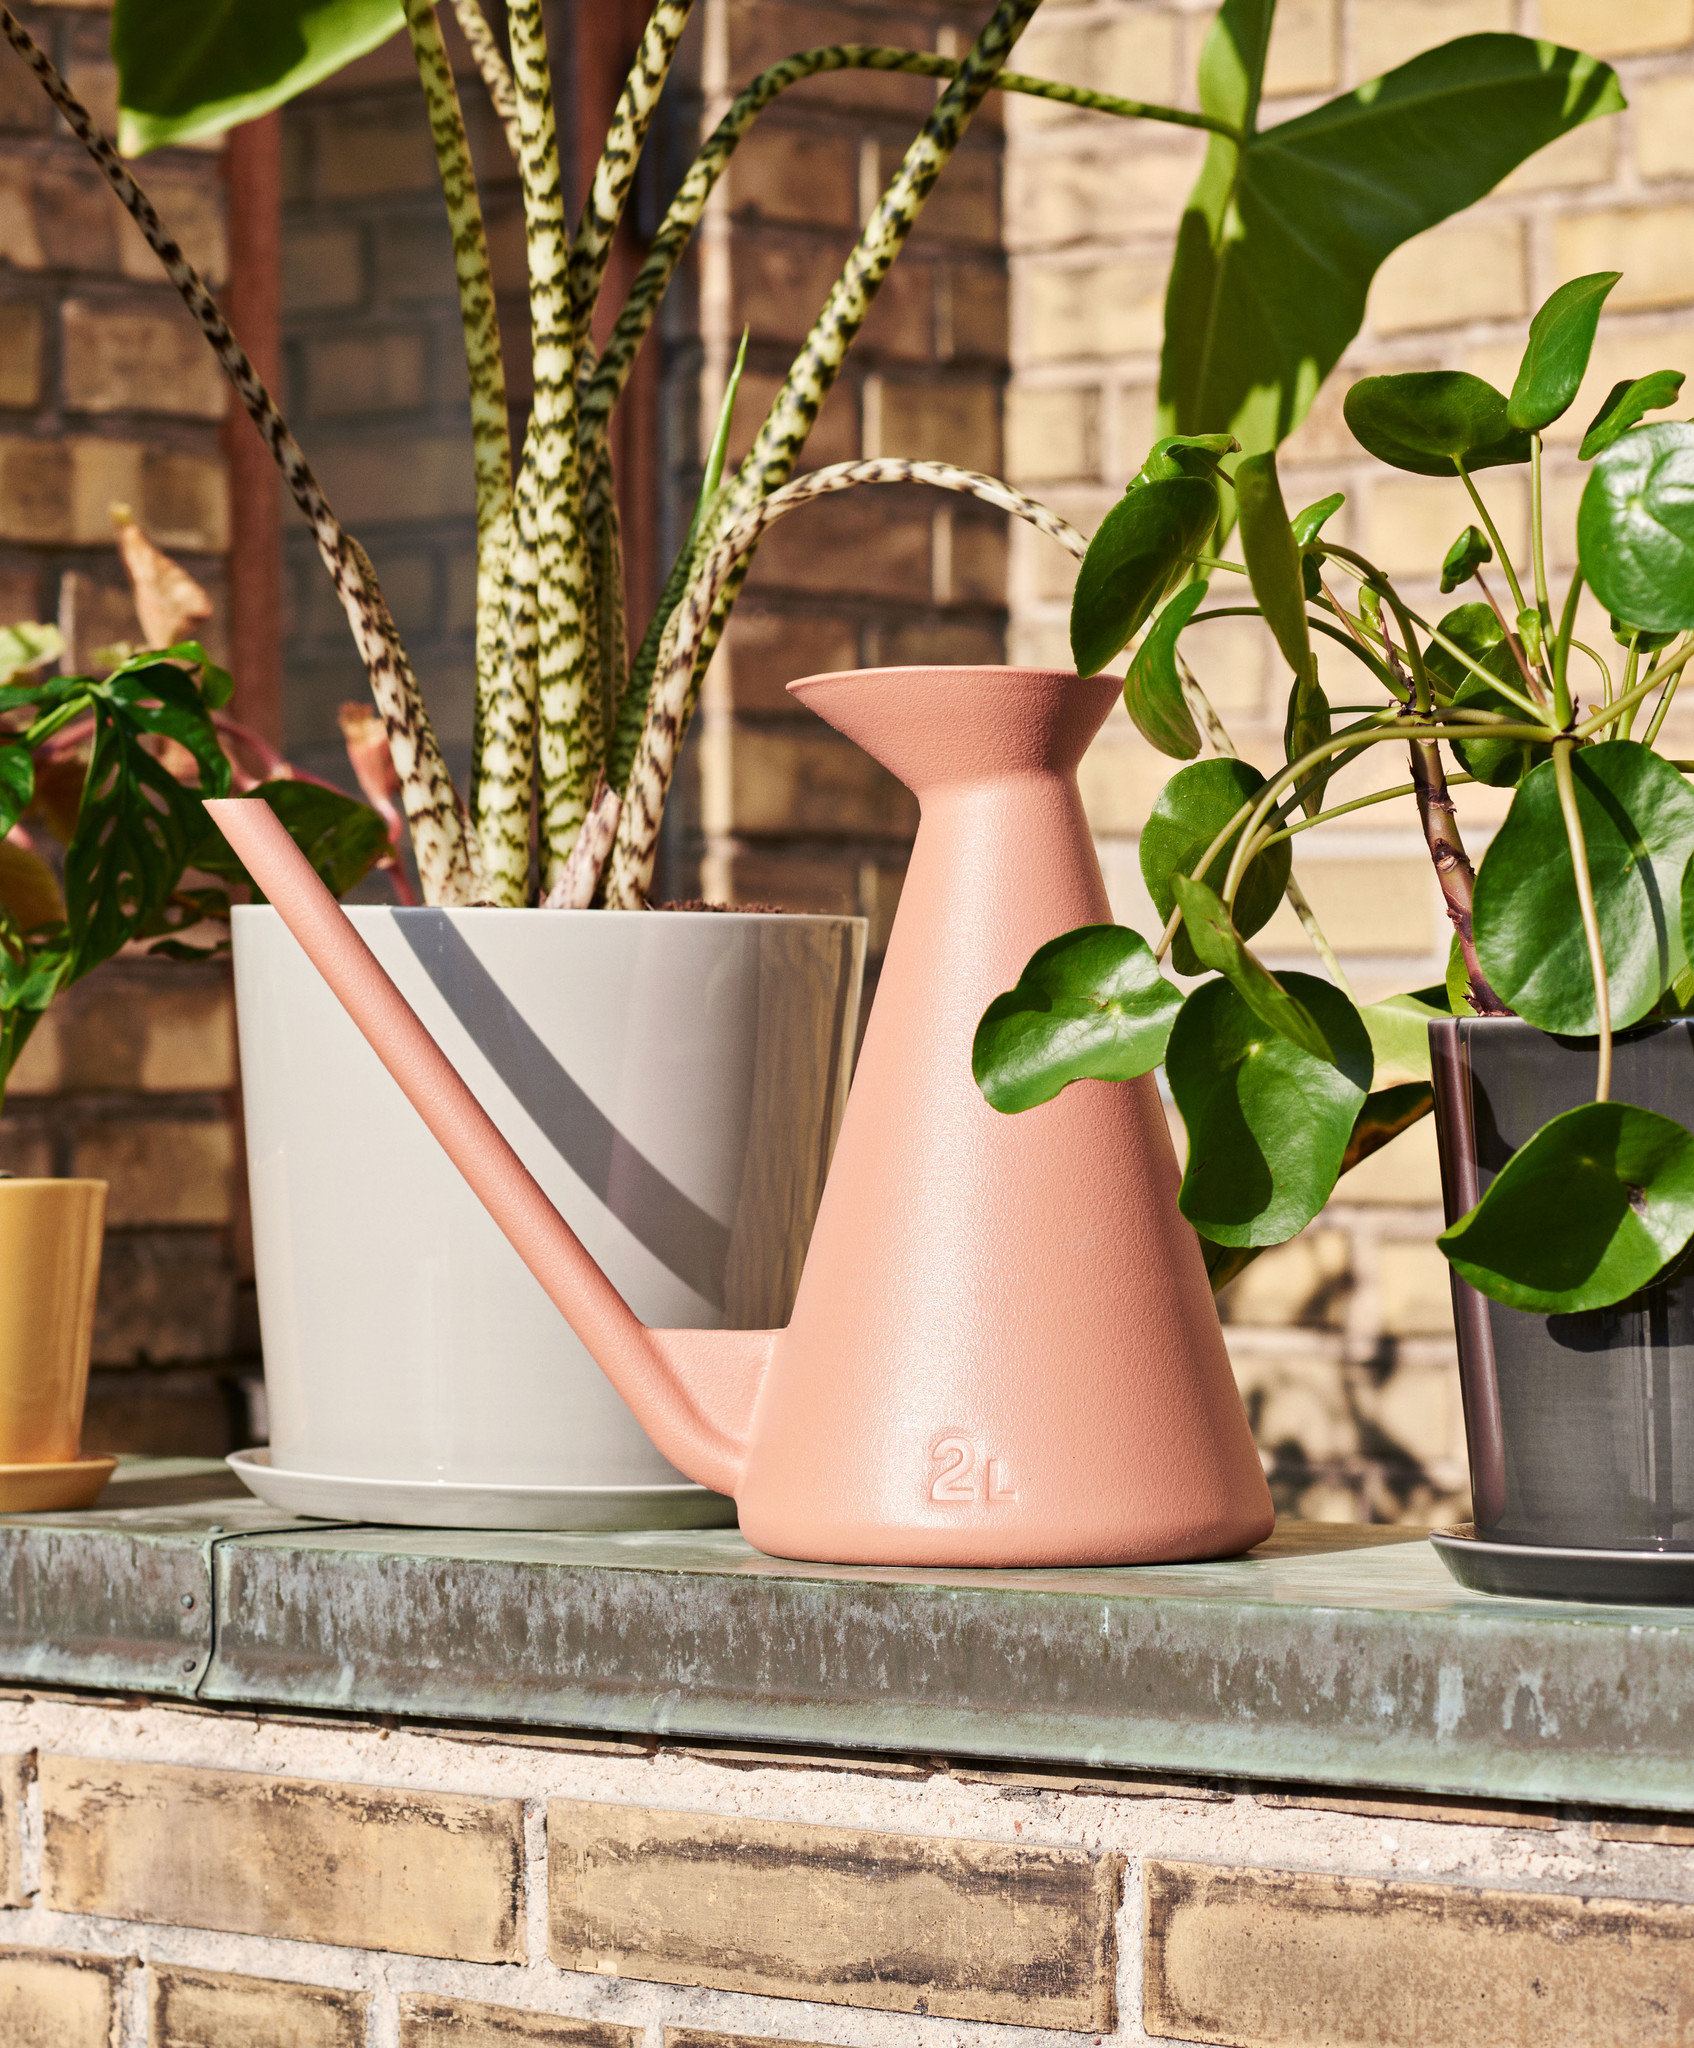 Watering Can-2